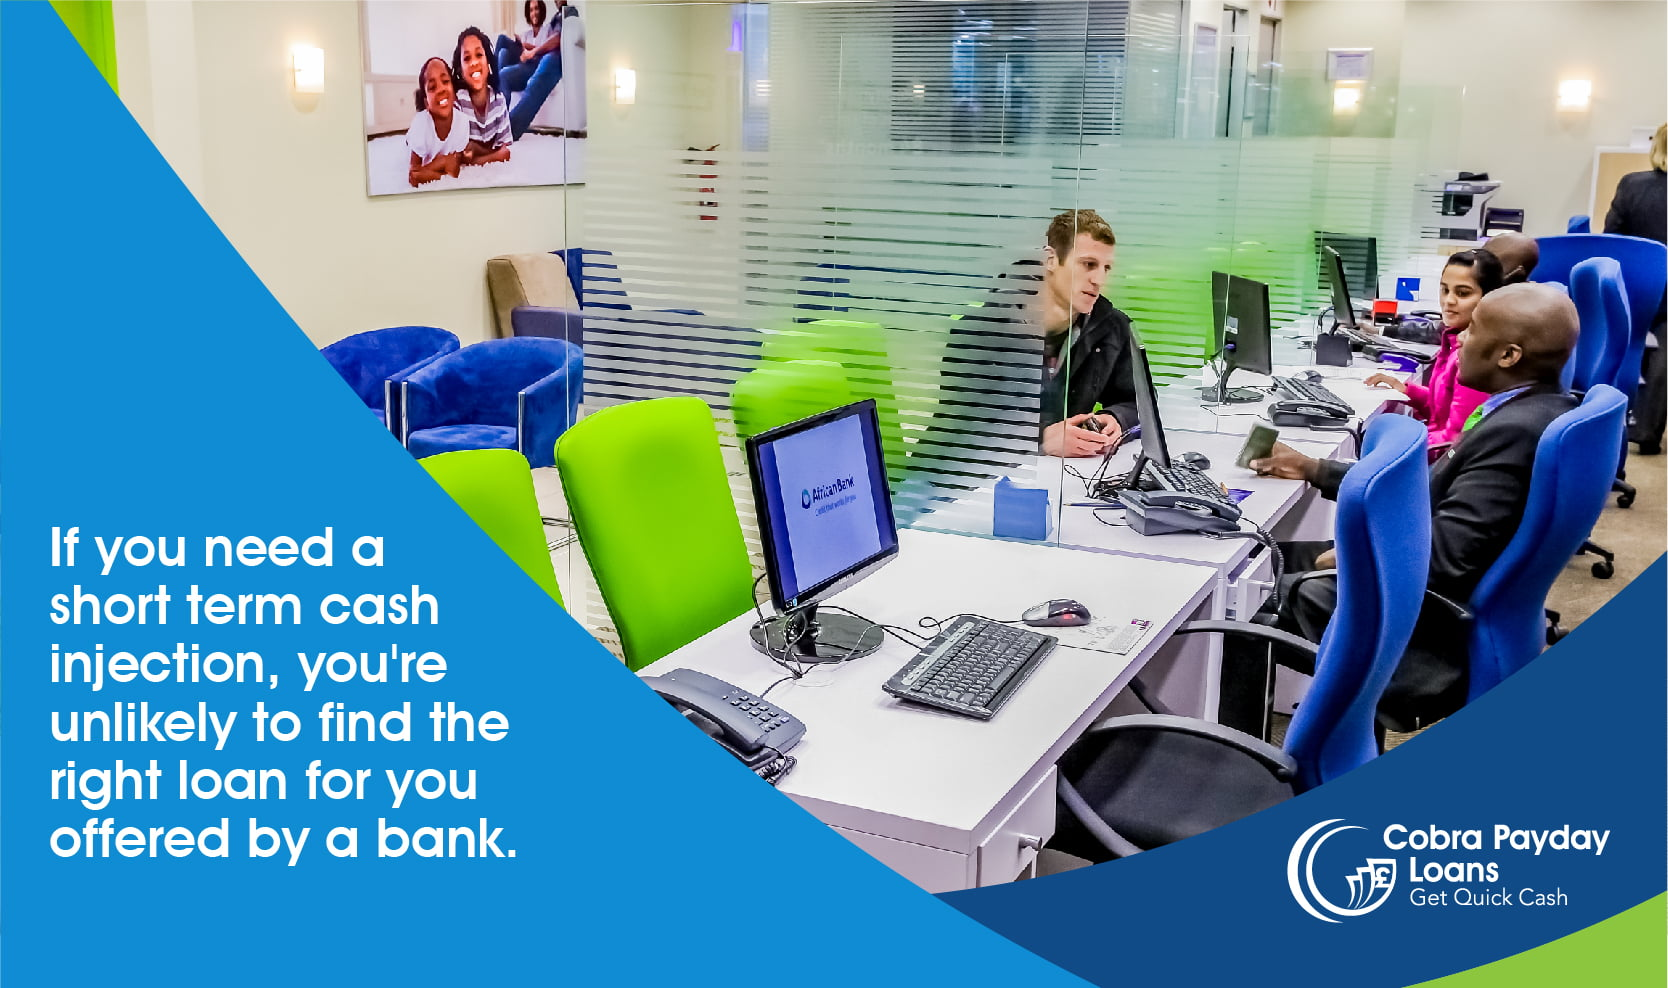 If you need a short term cash injection, you're unlikely to find the right loan for you offered by a bank